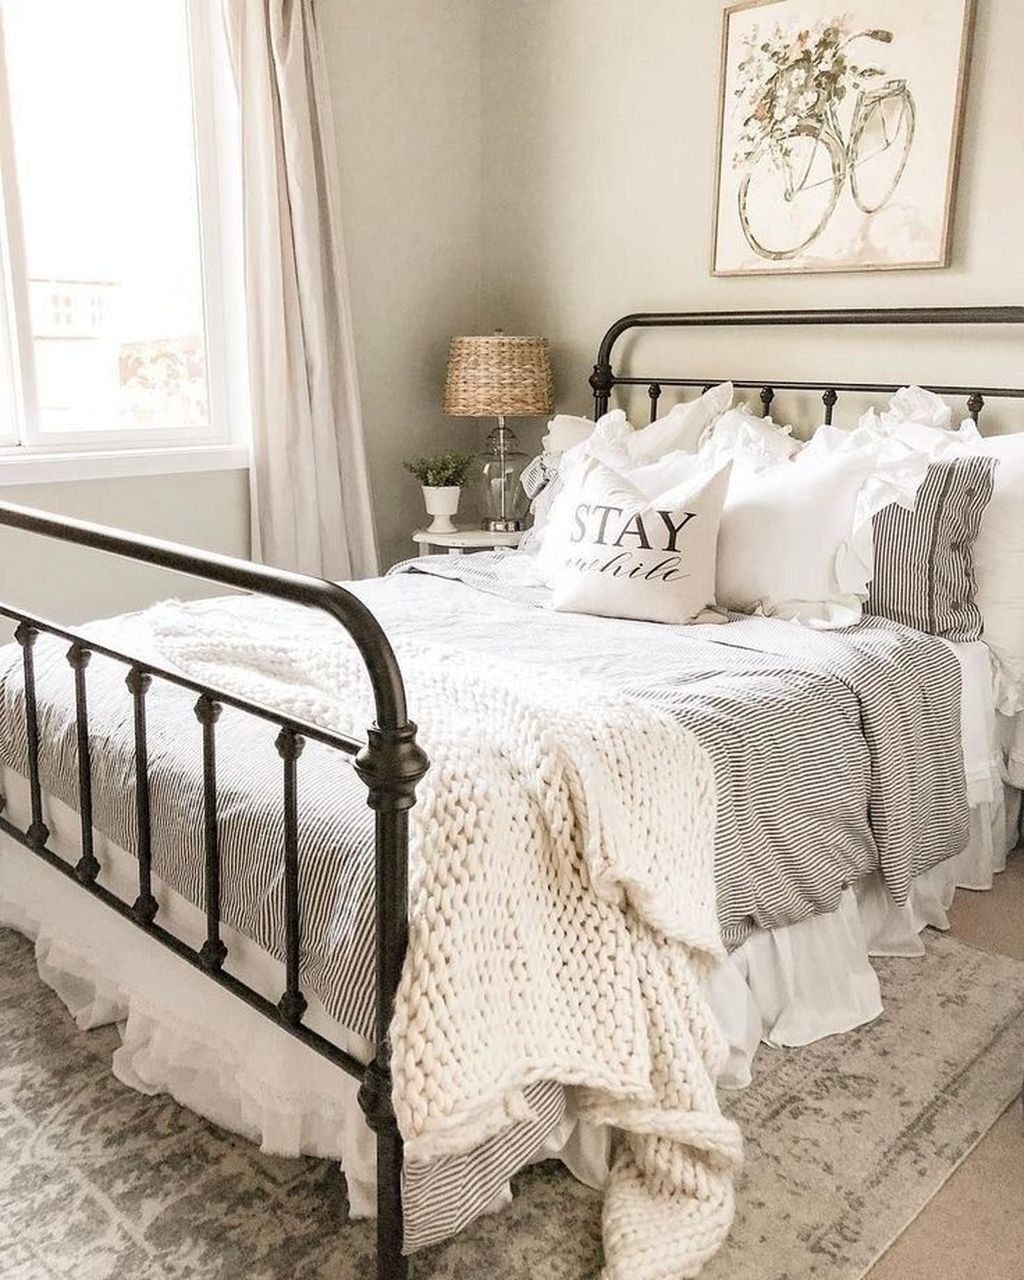 Stunning French Bedroom Decor Ideas That Will Inspire You 23